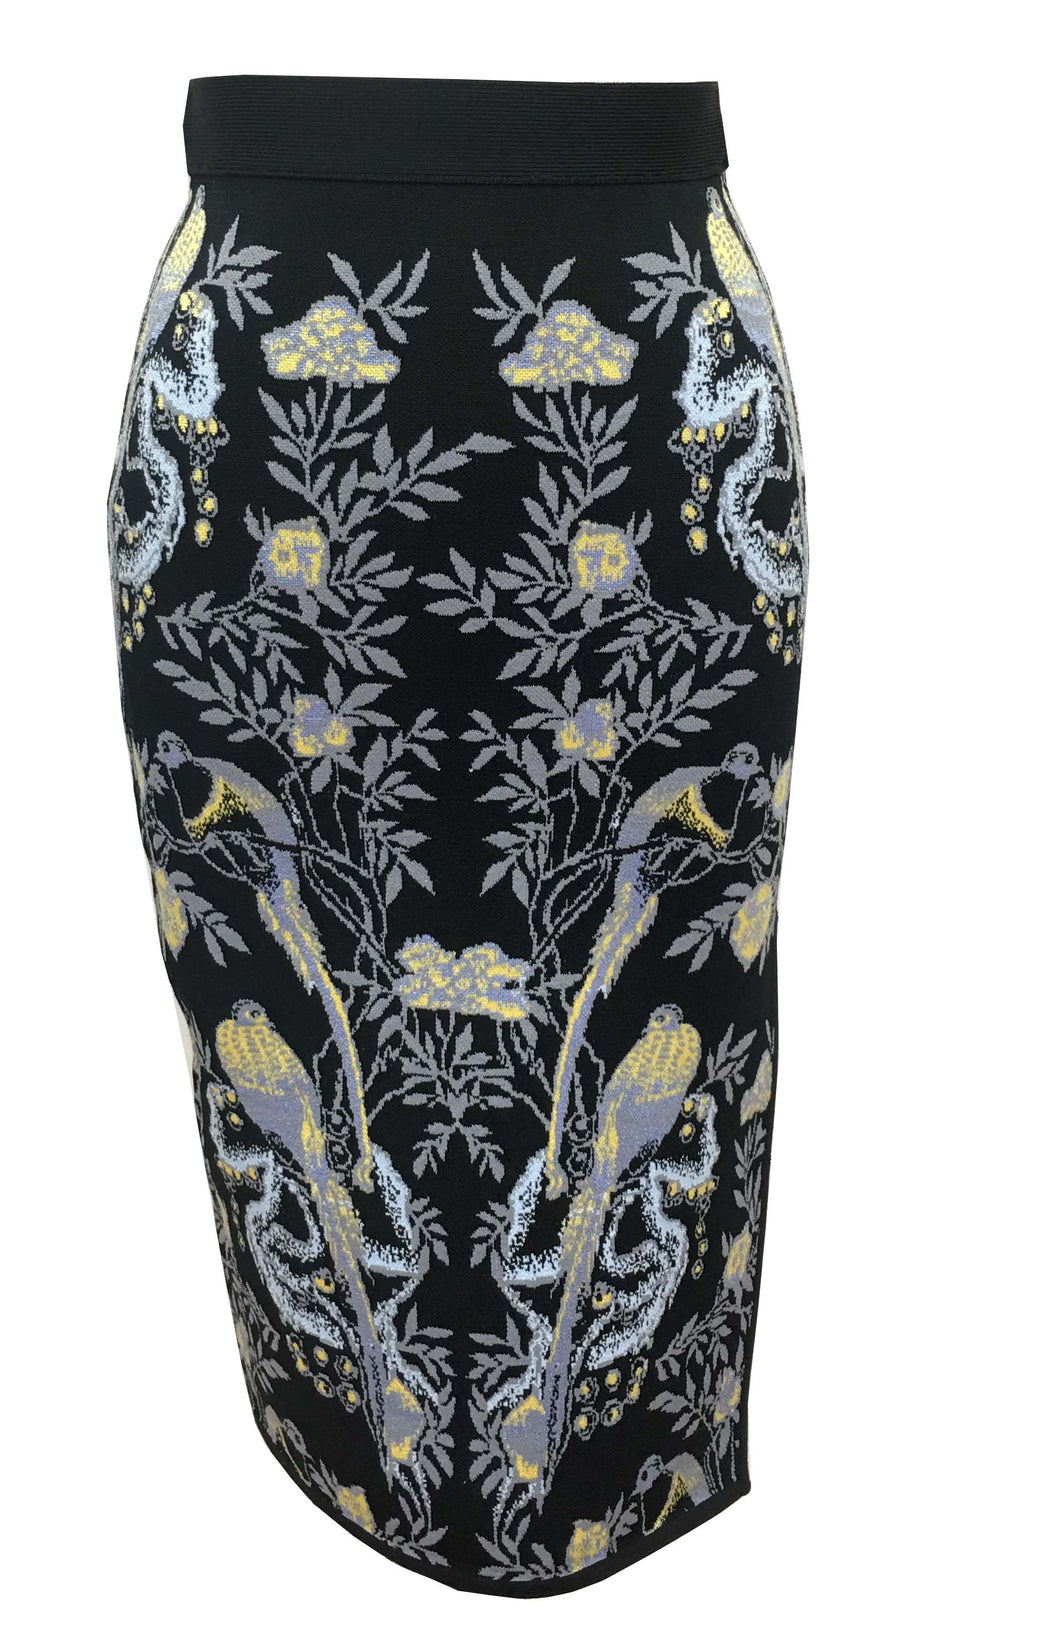 Anna Bird Jacquard Skirt in Black